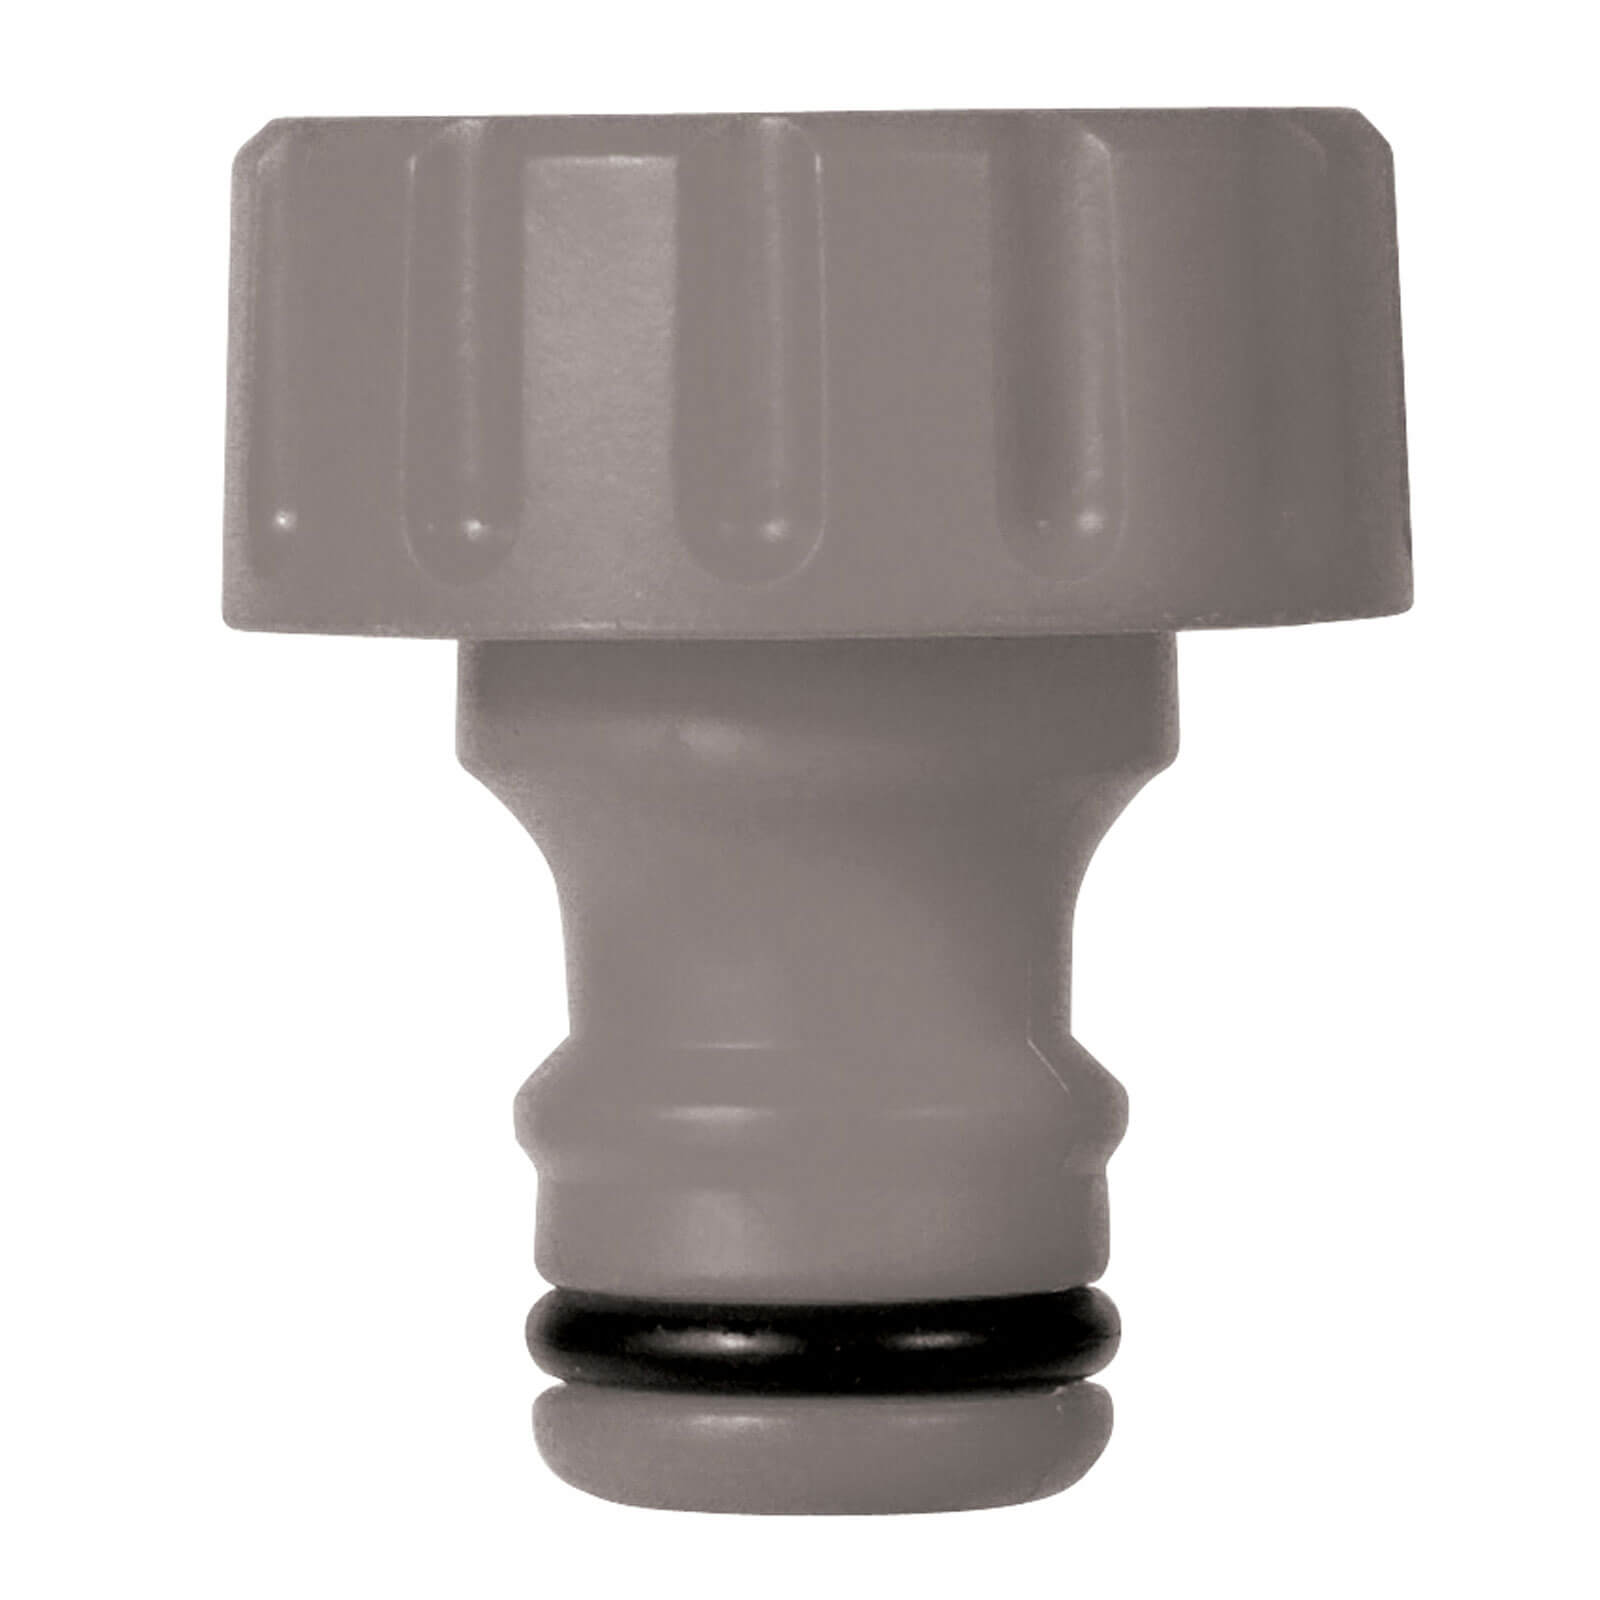 Hozelock Plastic Inlet Adaptor for Hose Carts & Hose Reels